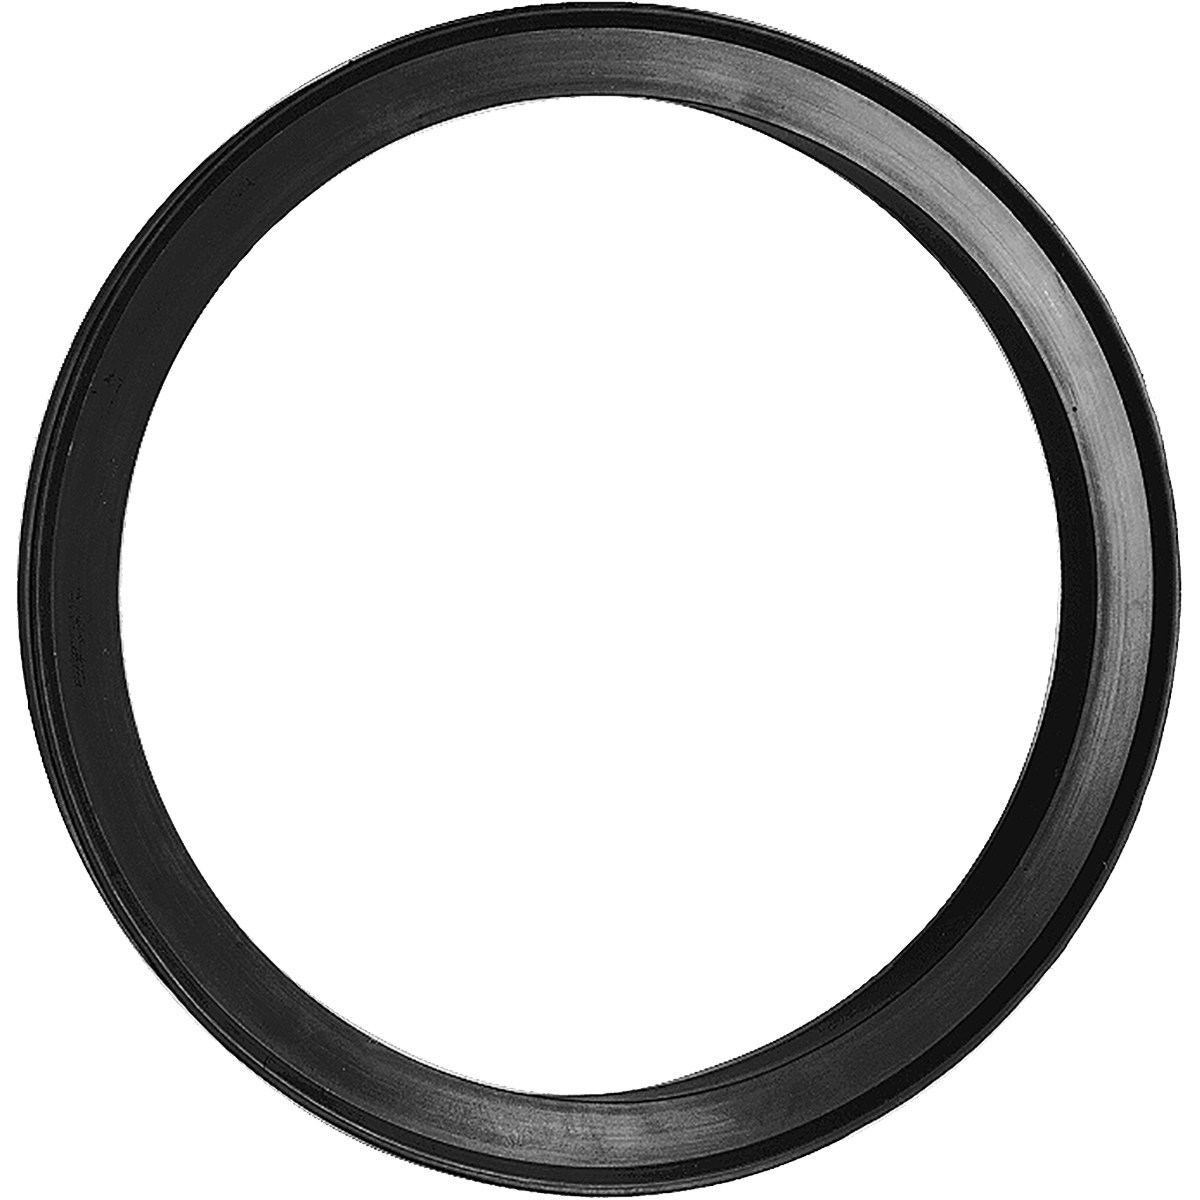 MJ GASKETS & BACKING RINGS - For CI, IPS, PIP and SDR35